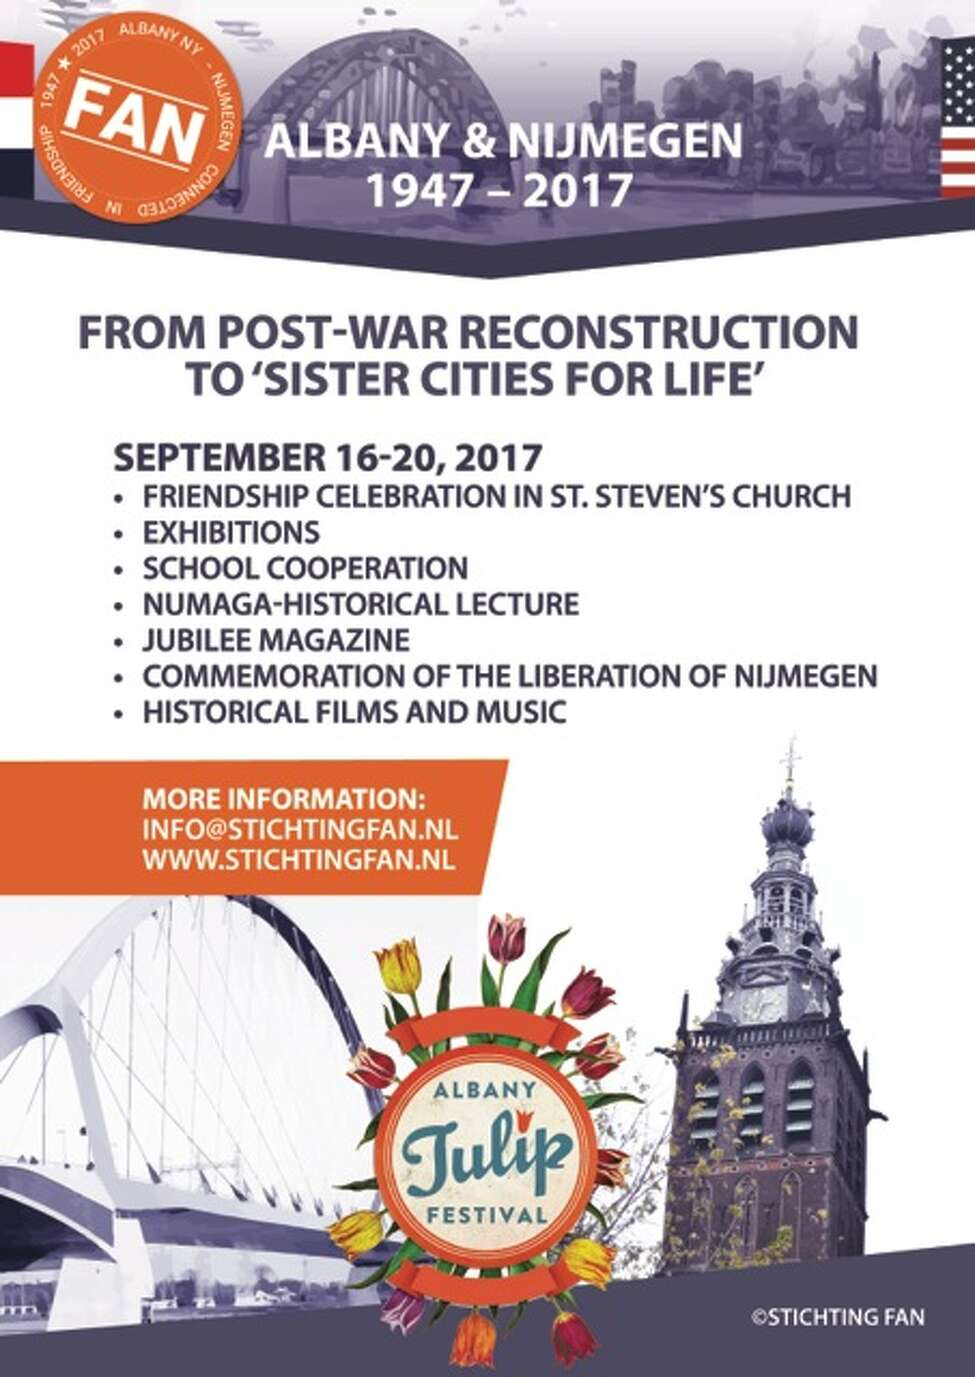 This year's events surrounding the connection between sister cities Albany and Nijmegen.